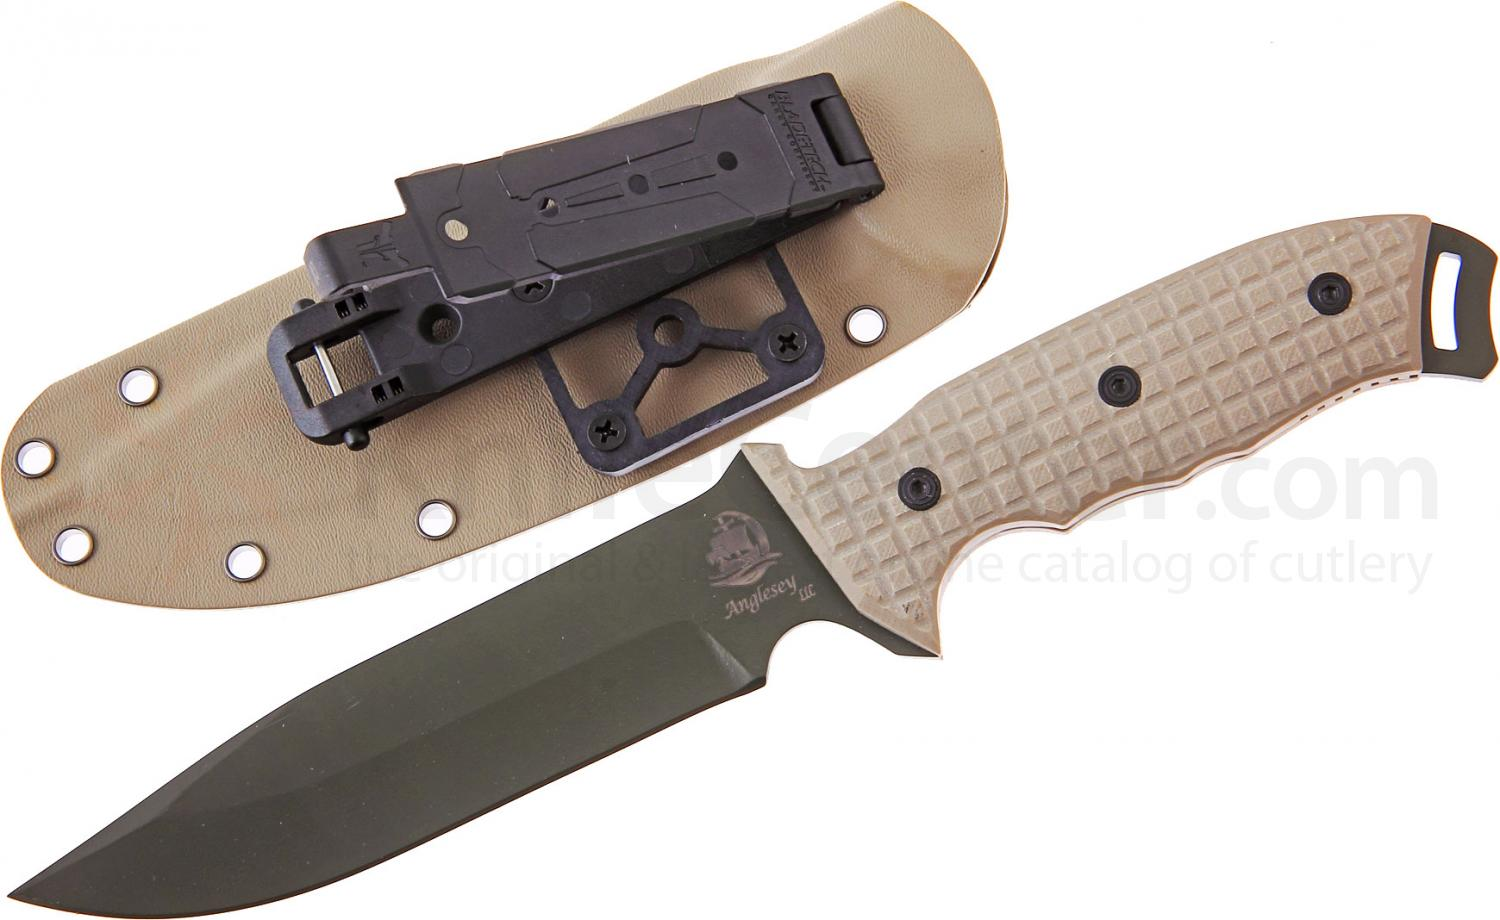 Anglesey Knives Rival Olive Drab Fixed 6 inch Black 440C Drop Point Blade, G10 Handle, Kydex Sheath